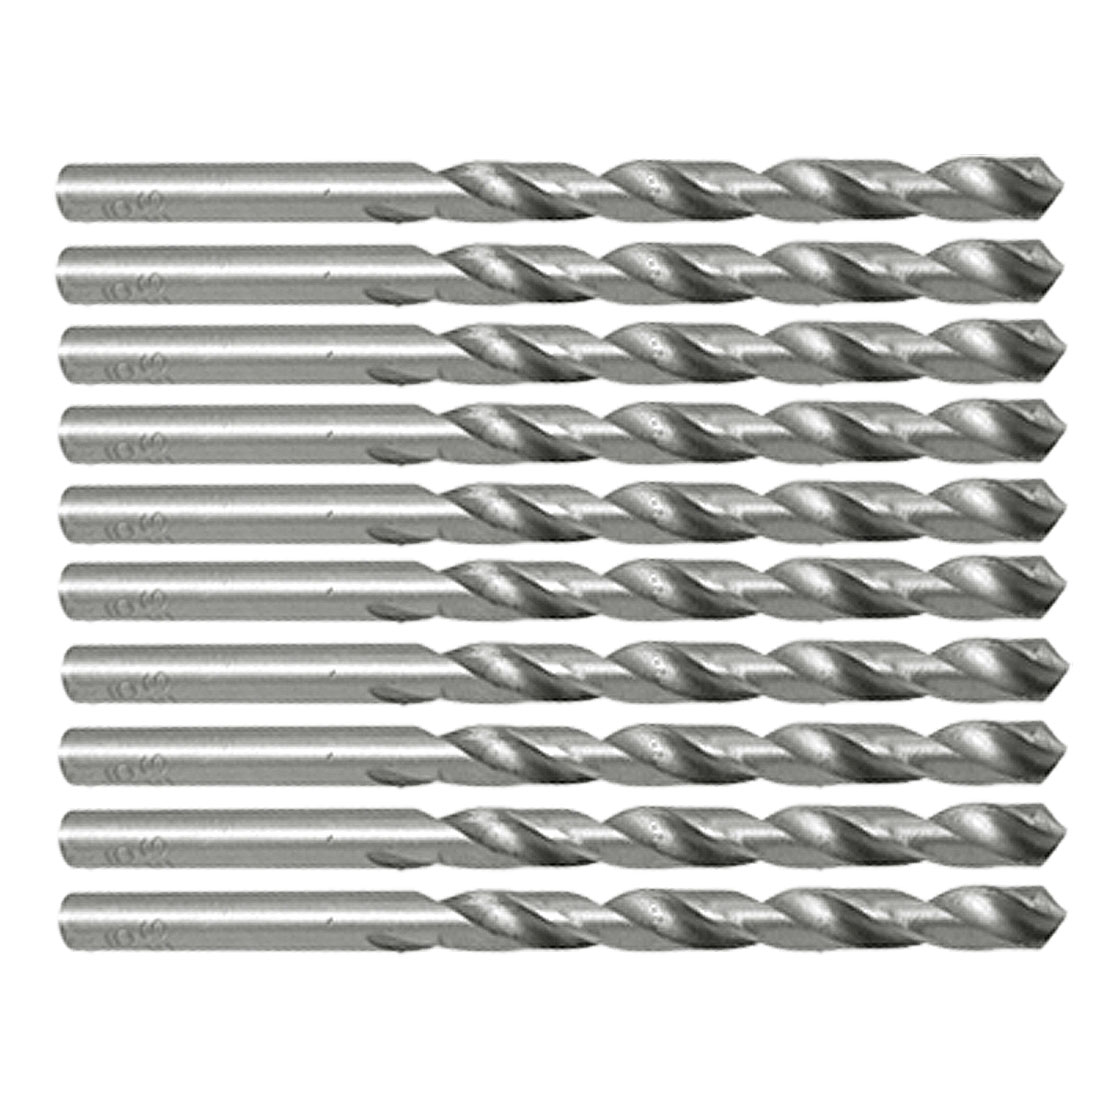 5mm Diameter Steel Straight Shank Twist Drill Bits Set 10 Pcs